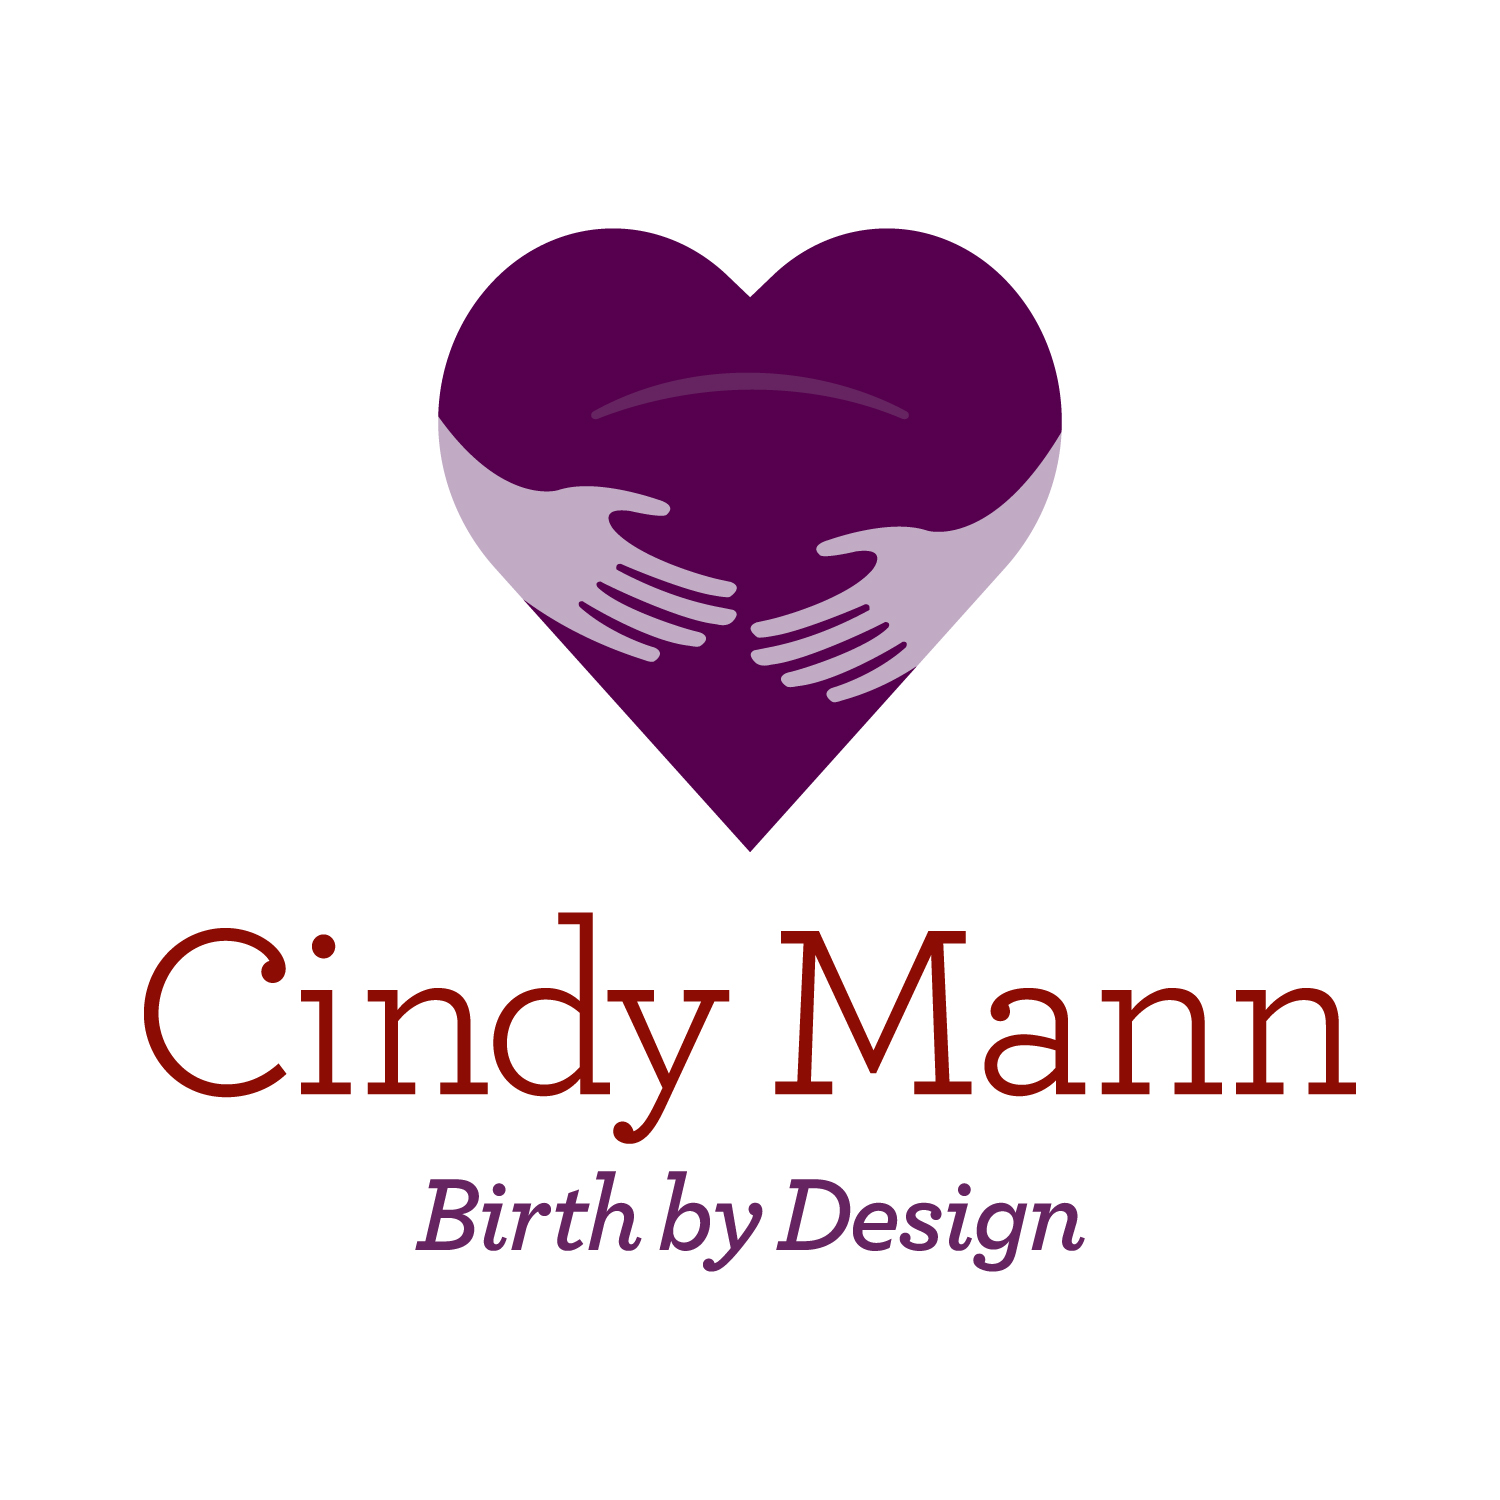 Cindy Mann Birth by Design